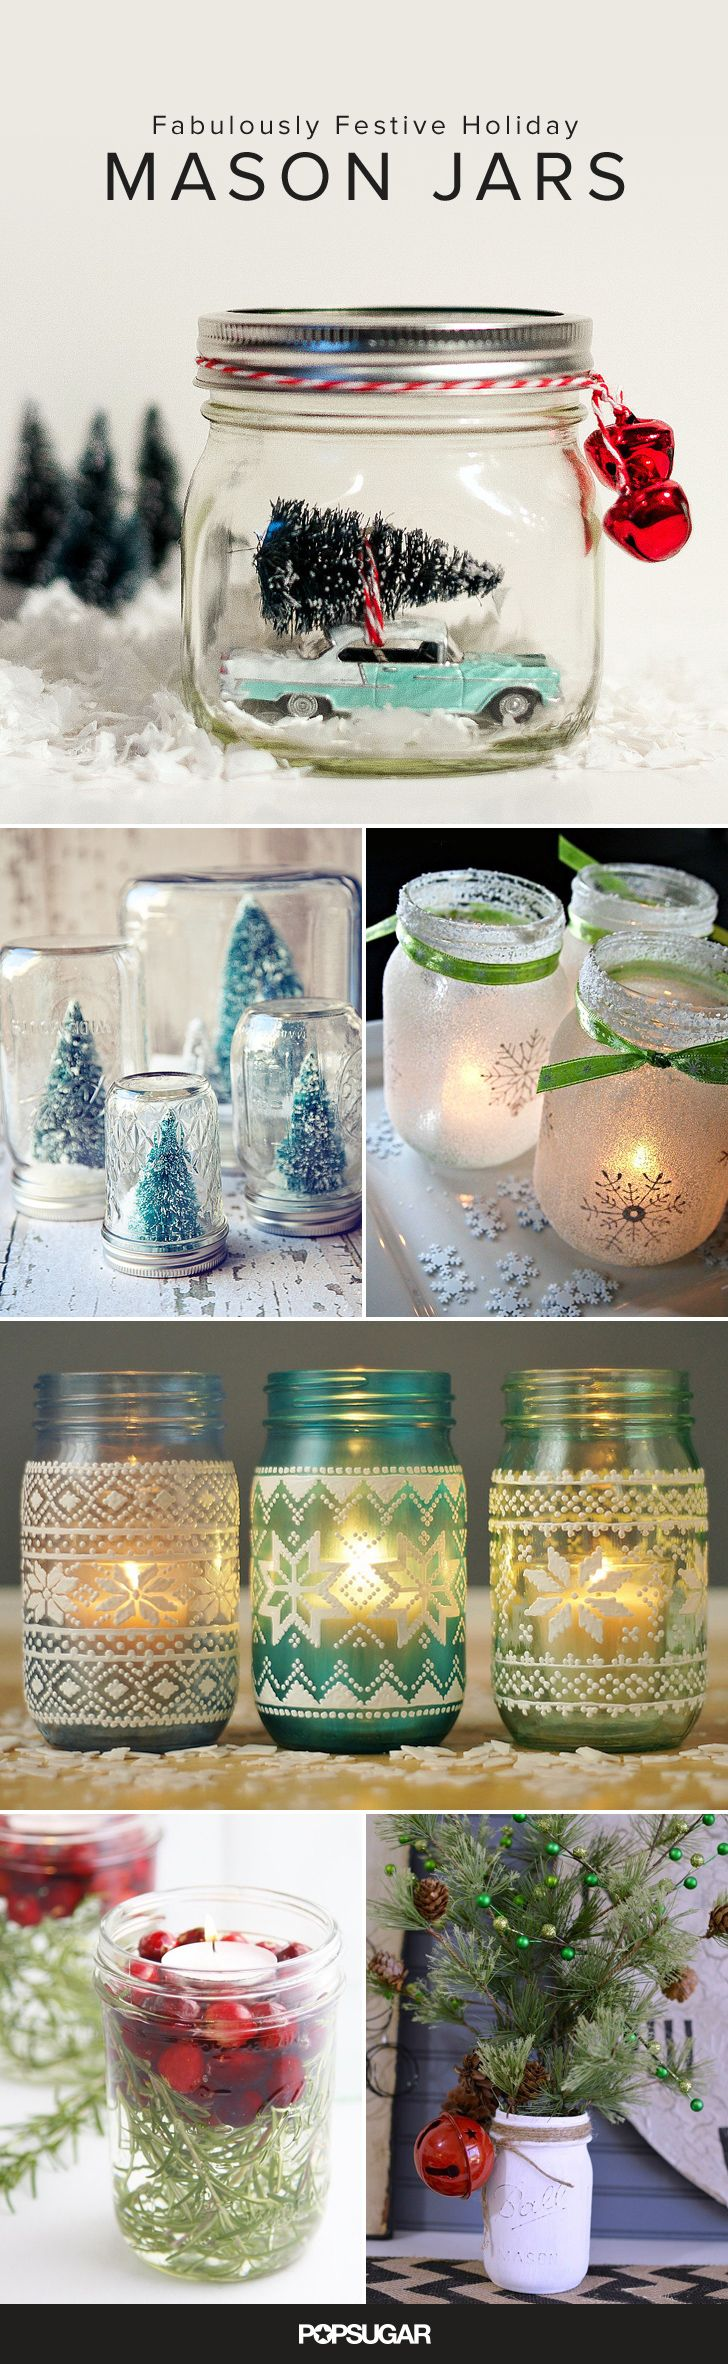 Mason jars have been popping out of canning cupboards and appearing in more unexpected places around the home for a while now. Whether you use them to create stylishly spooky decor for Halloween or get creative with decorative DIYs for the Winter holidays, it's clear they make an ideal canvas.